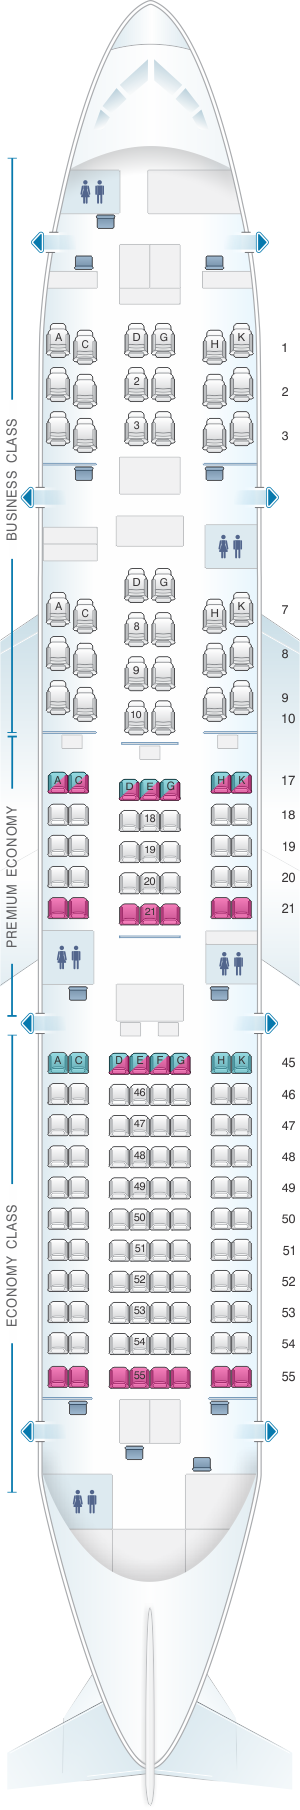 Seat map for Japan Airlines (JAL) Boeing B787-8 E11